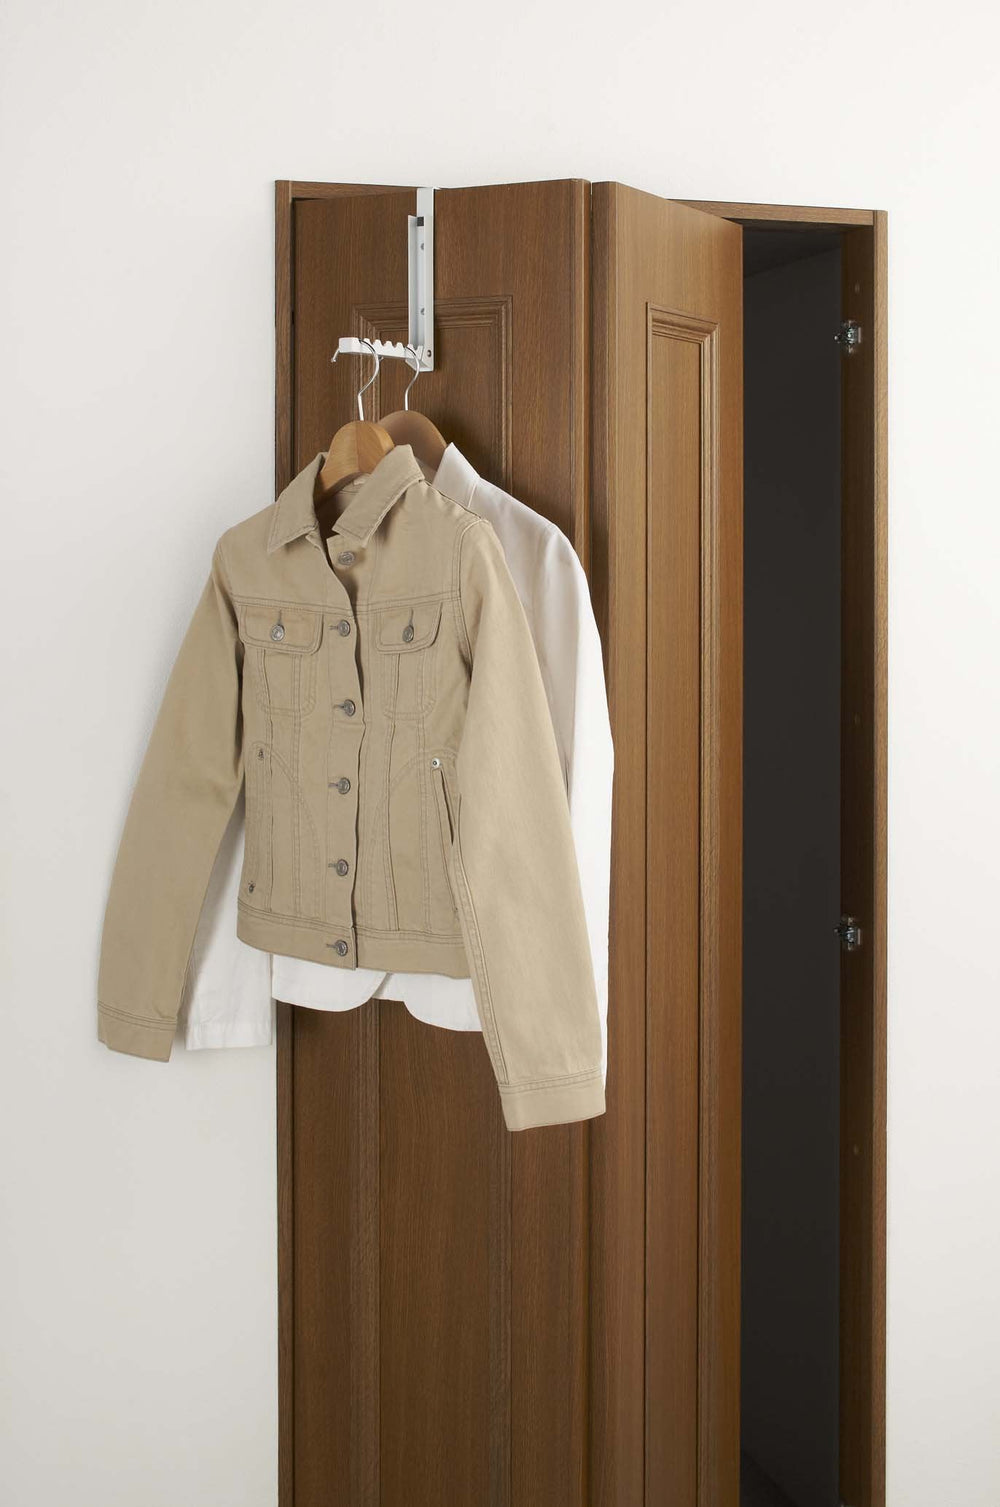 Yamazaki's folding hook on a door holding clothes